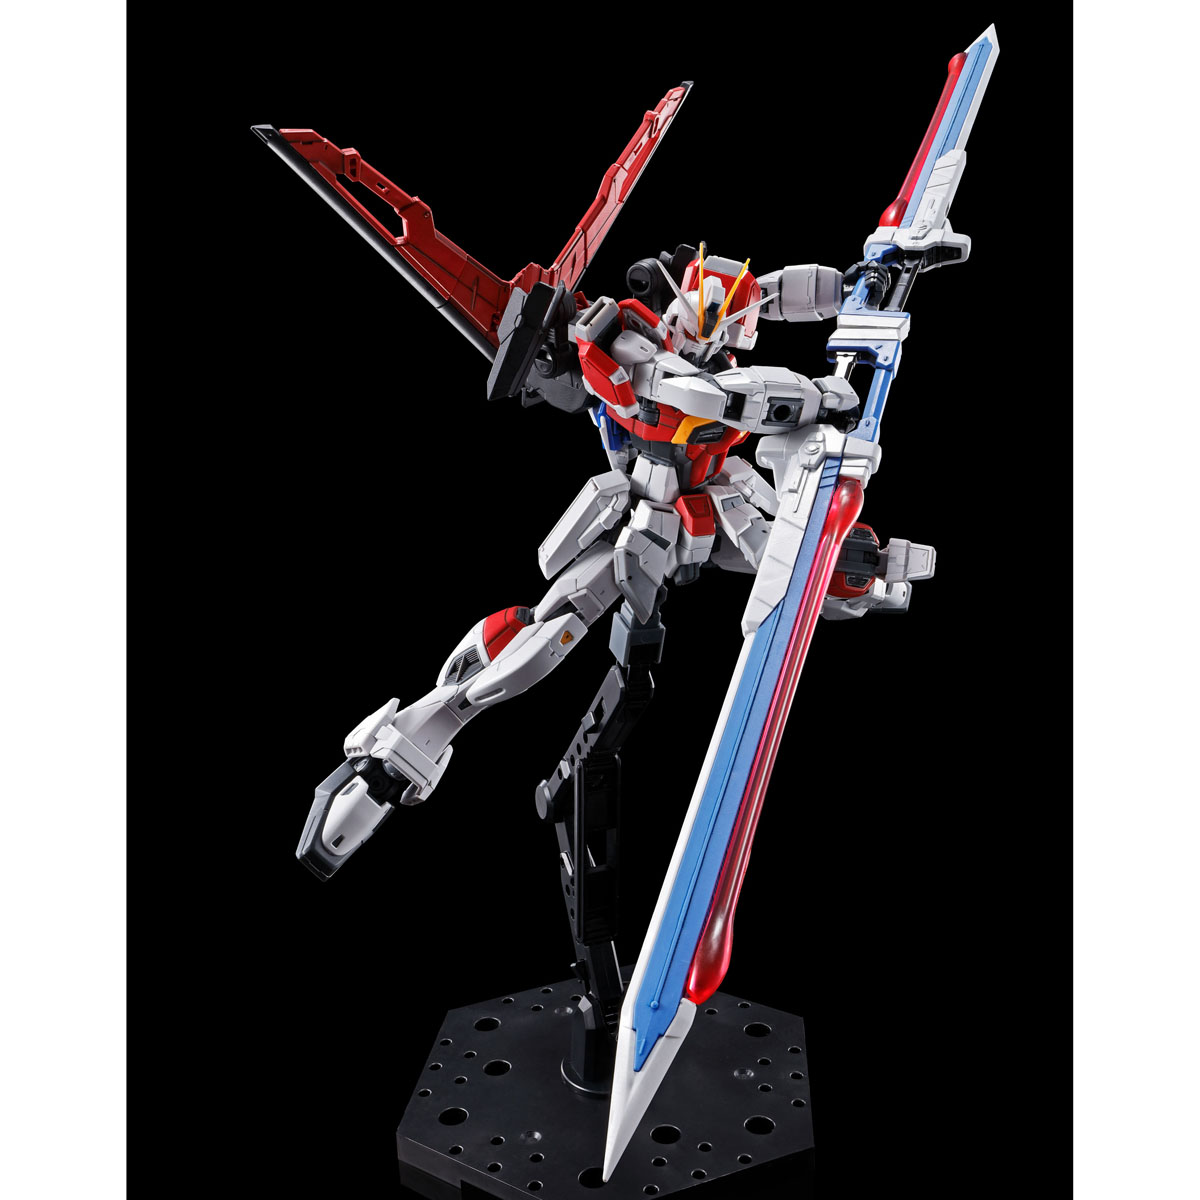 RG 1/144 SWORD IMPULSE GUNDAM[Jan 2021 Delivery]